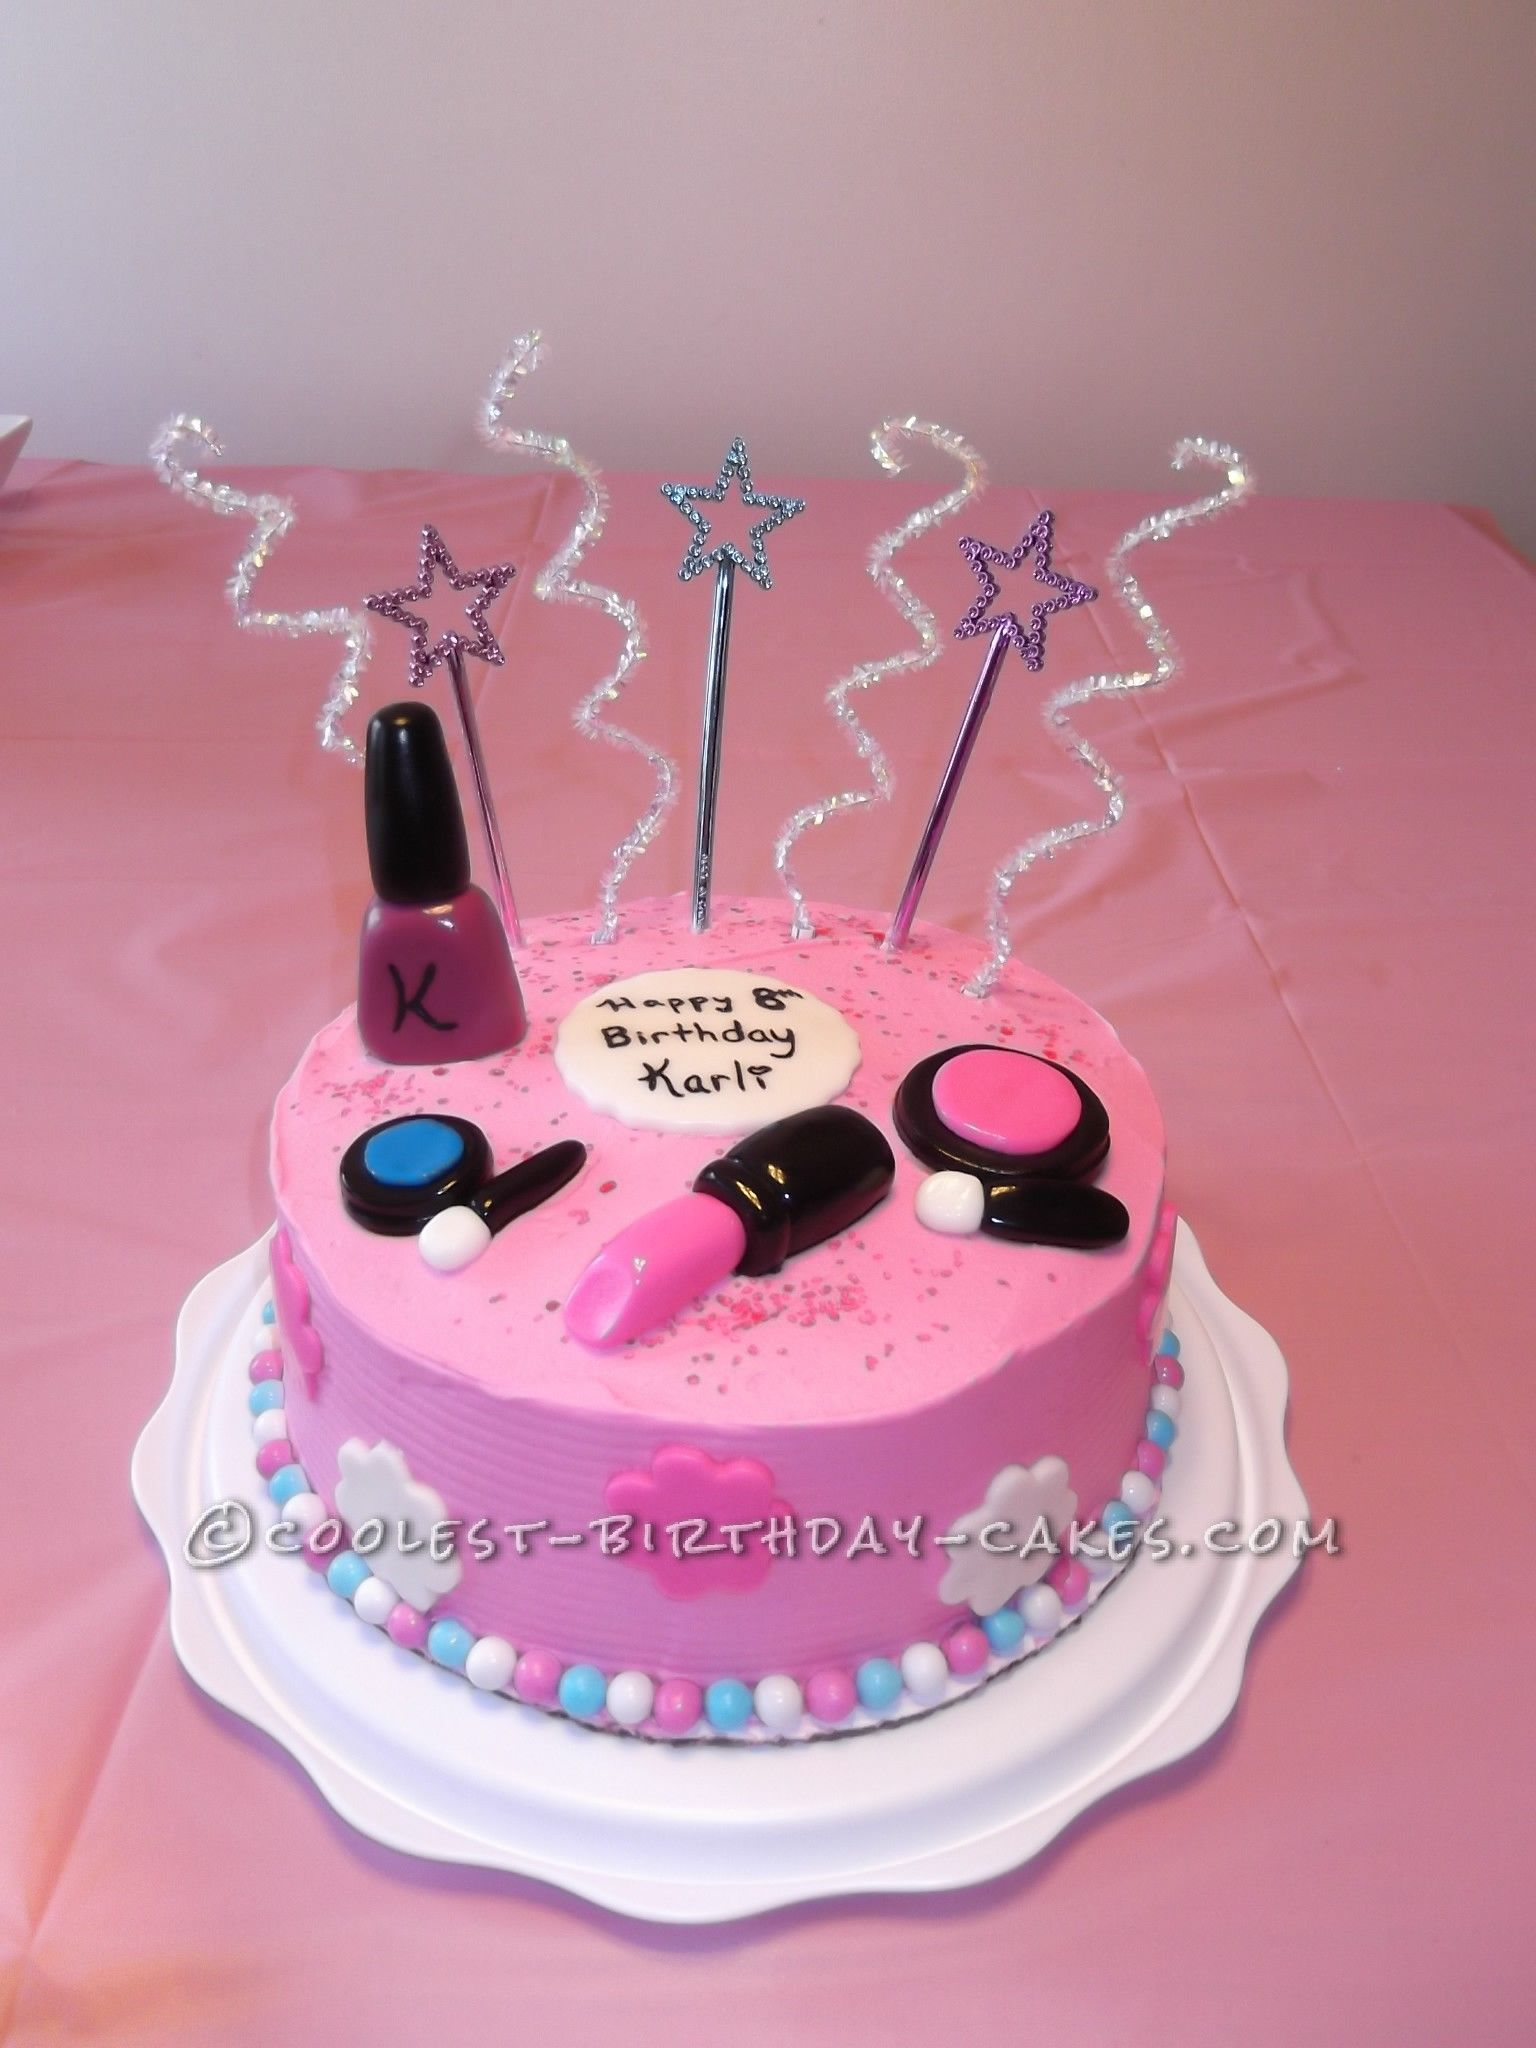 Sweet Makeup Cake For An 8 Year Old Girl With Images 8th